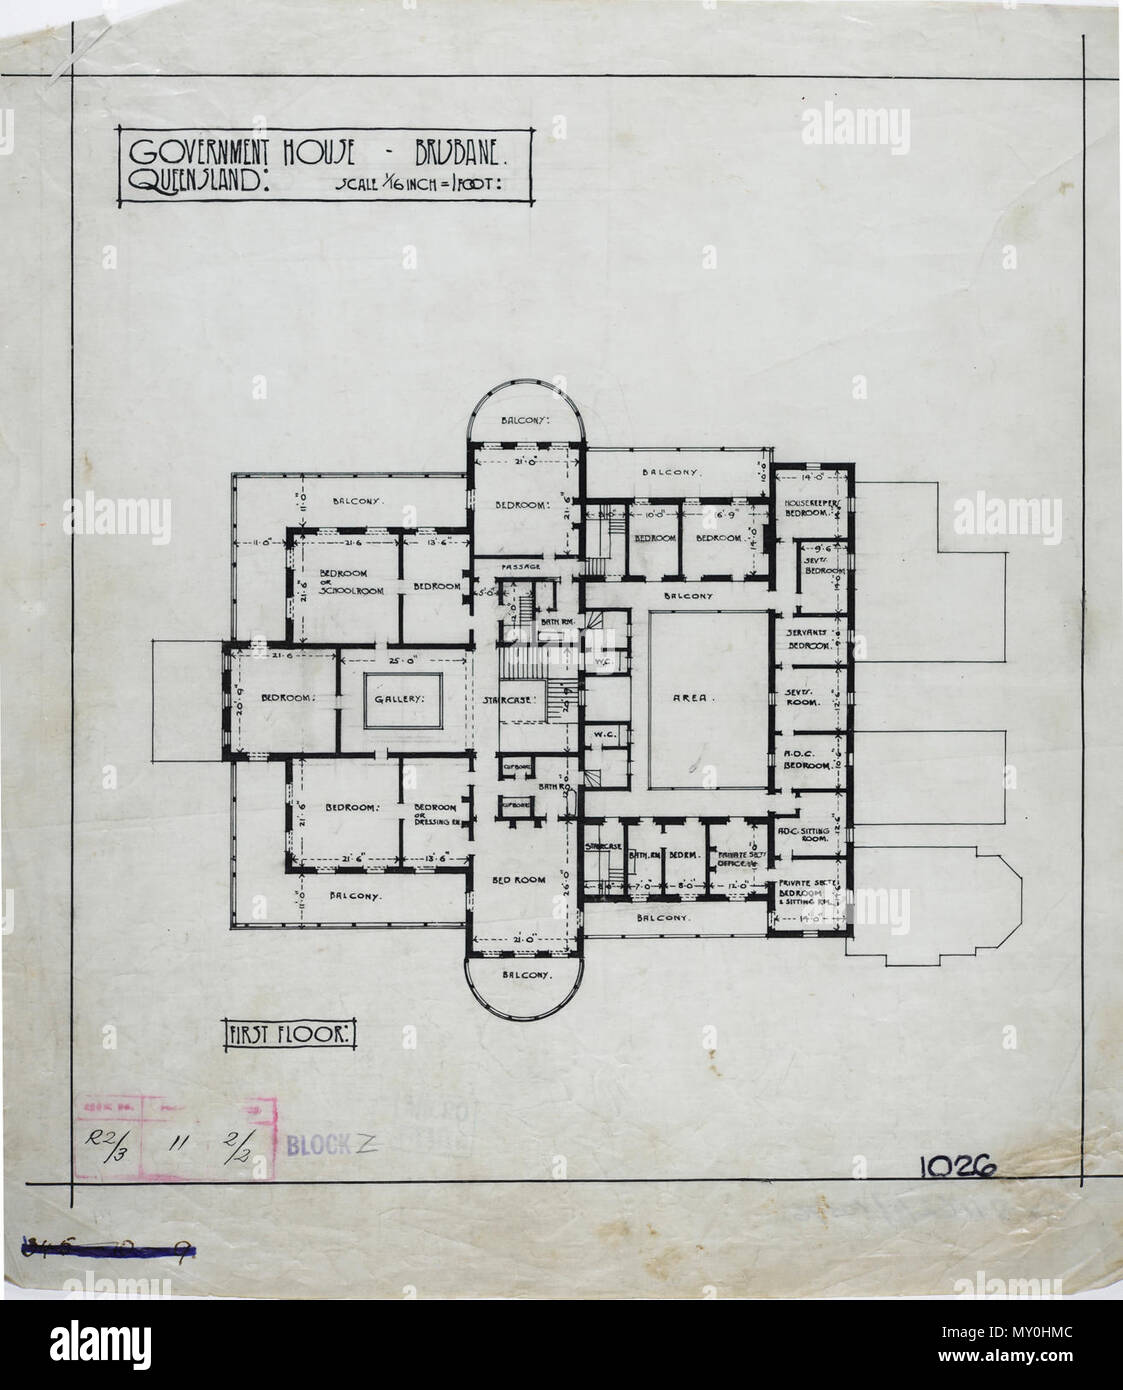 First Floor Plan of Government House, Brisbane, c 1940. Johann Heussler, a wealthy Brisbane merchant purchases 22 acres of land from the Government in 1862 and made plans to build a house there. Local architect Benjamin Backhouse designed a house in 1865, to be constructed from stone excavated on site combined with a cement and lime mixture.  The Heussler family lived at Fernberg from 1865 until 1872 when the high cost of upkeep forces foreclosure on the property by the mortgagee.  Sir Arthur Palmer, Premier of Queensland (1870-1874), and later Lieutenant Governor resided in Fernberg from 1872 - Stock Image